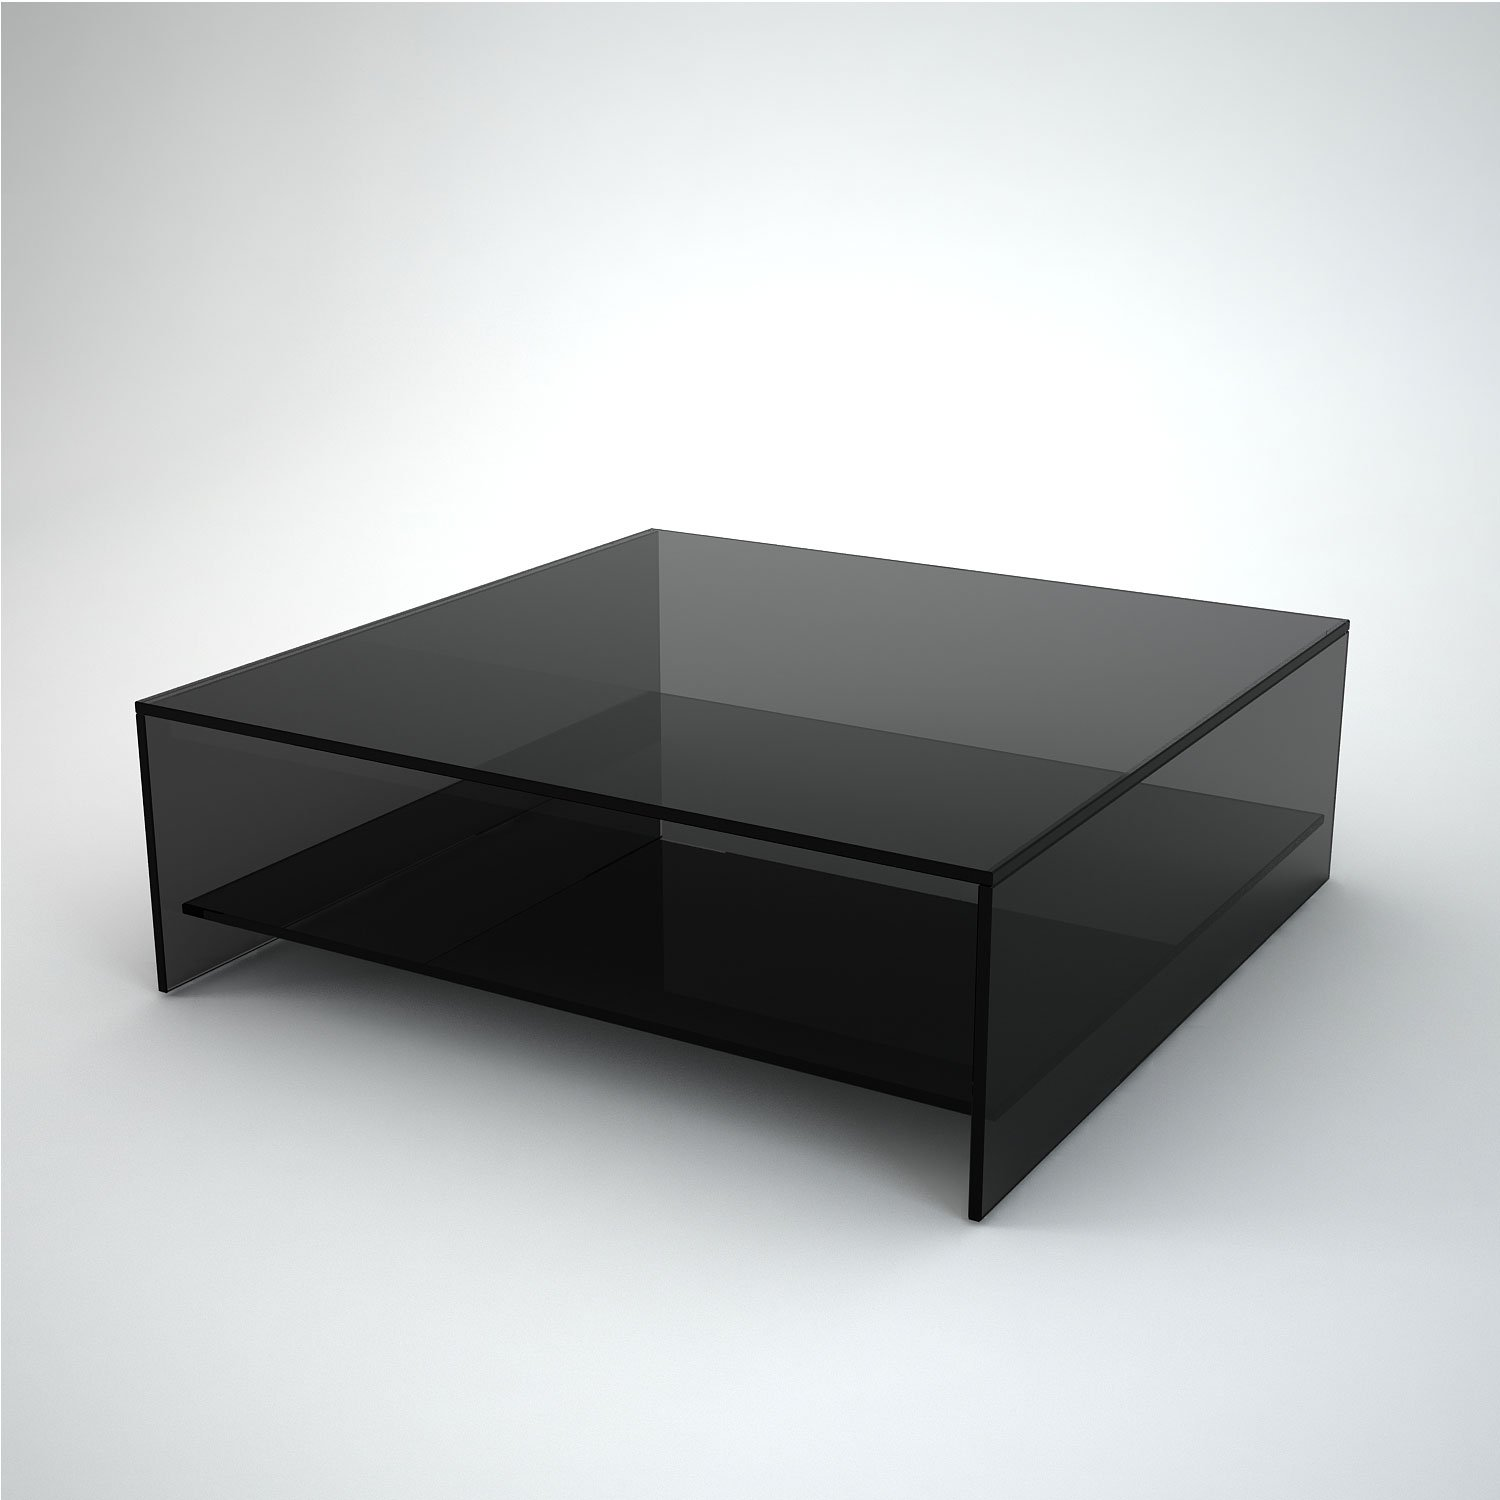 Set Of 2 Square Design Nesting Coffee Tables Made Of Black: Square Smoked Glass Coffee Table With Shelf